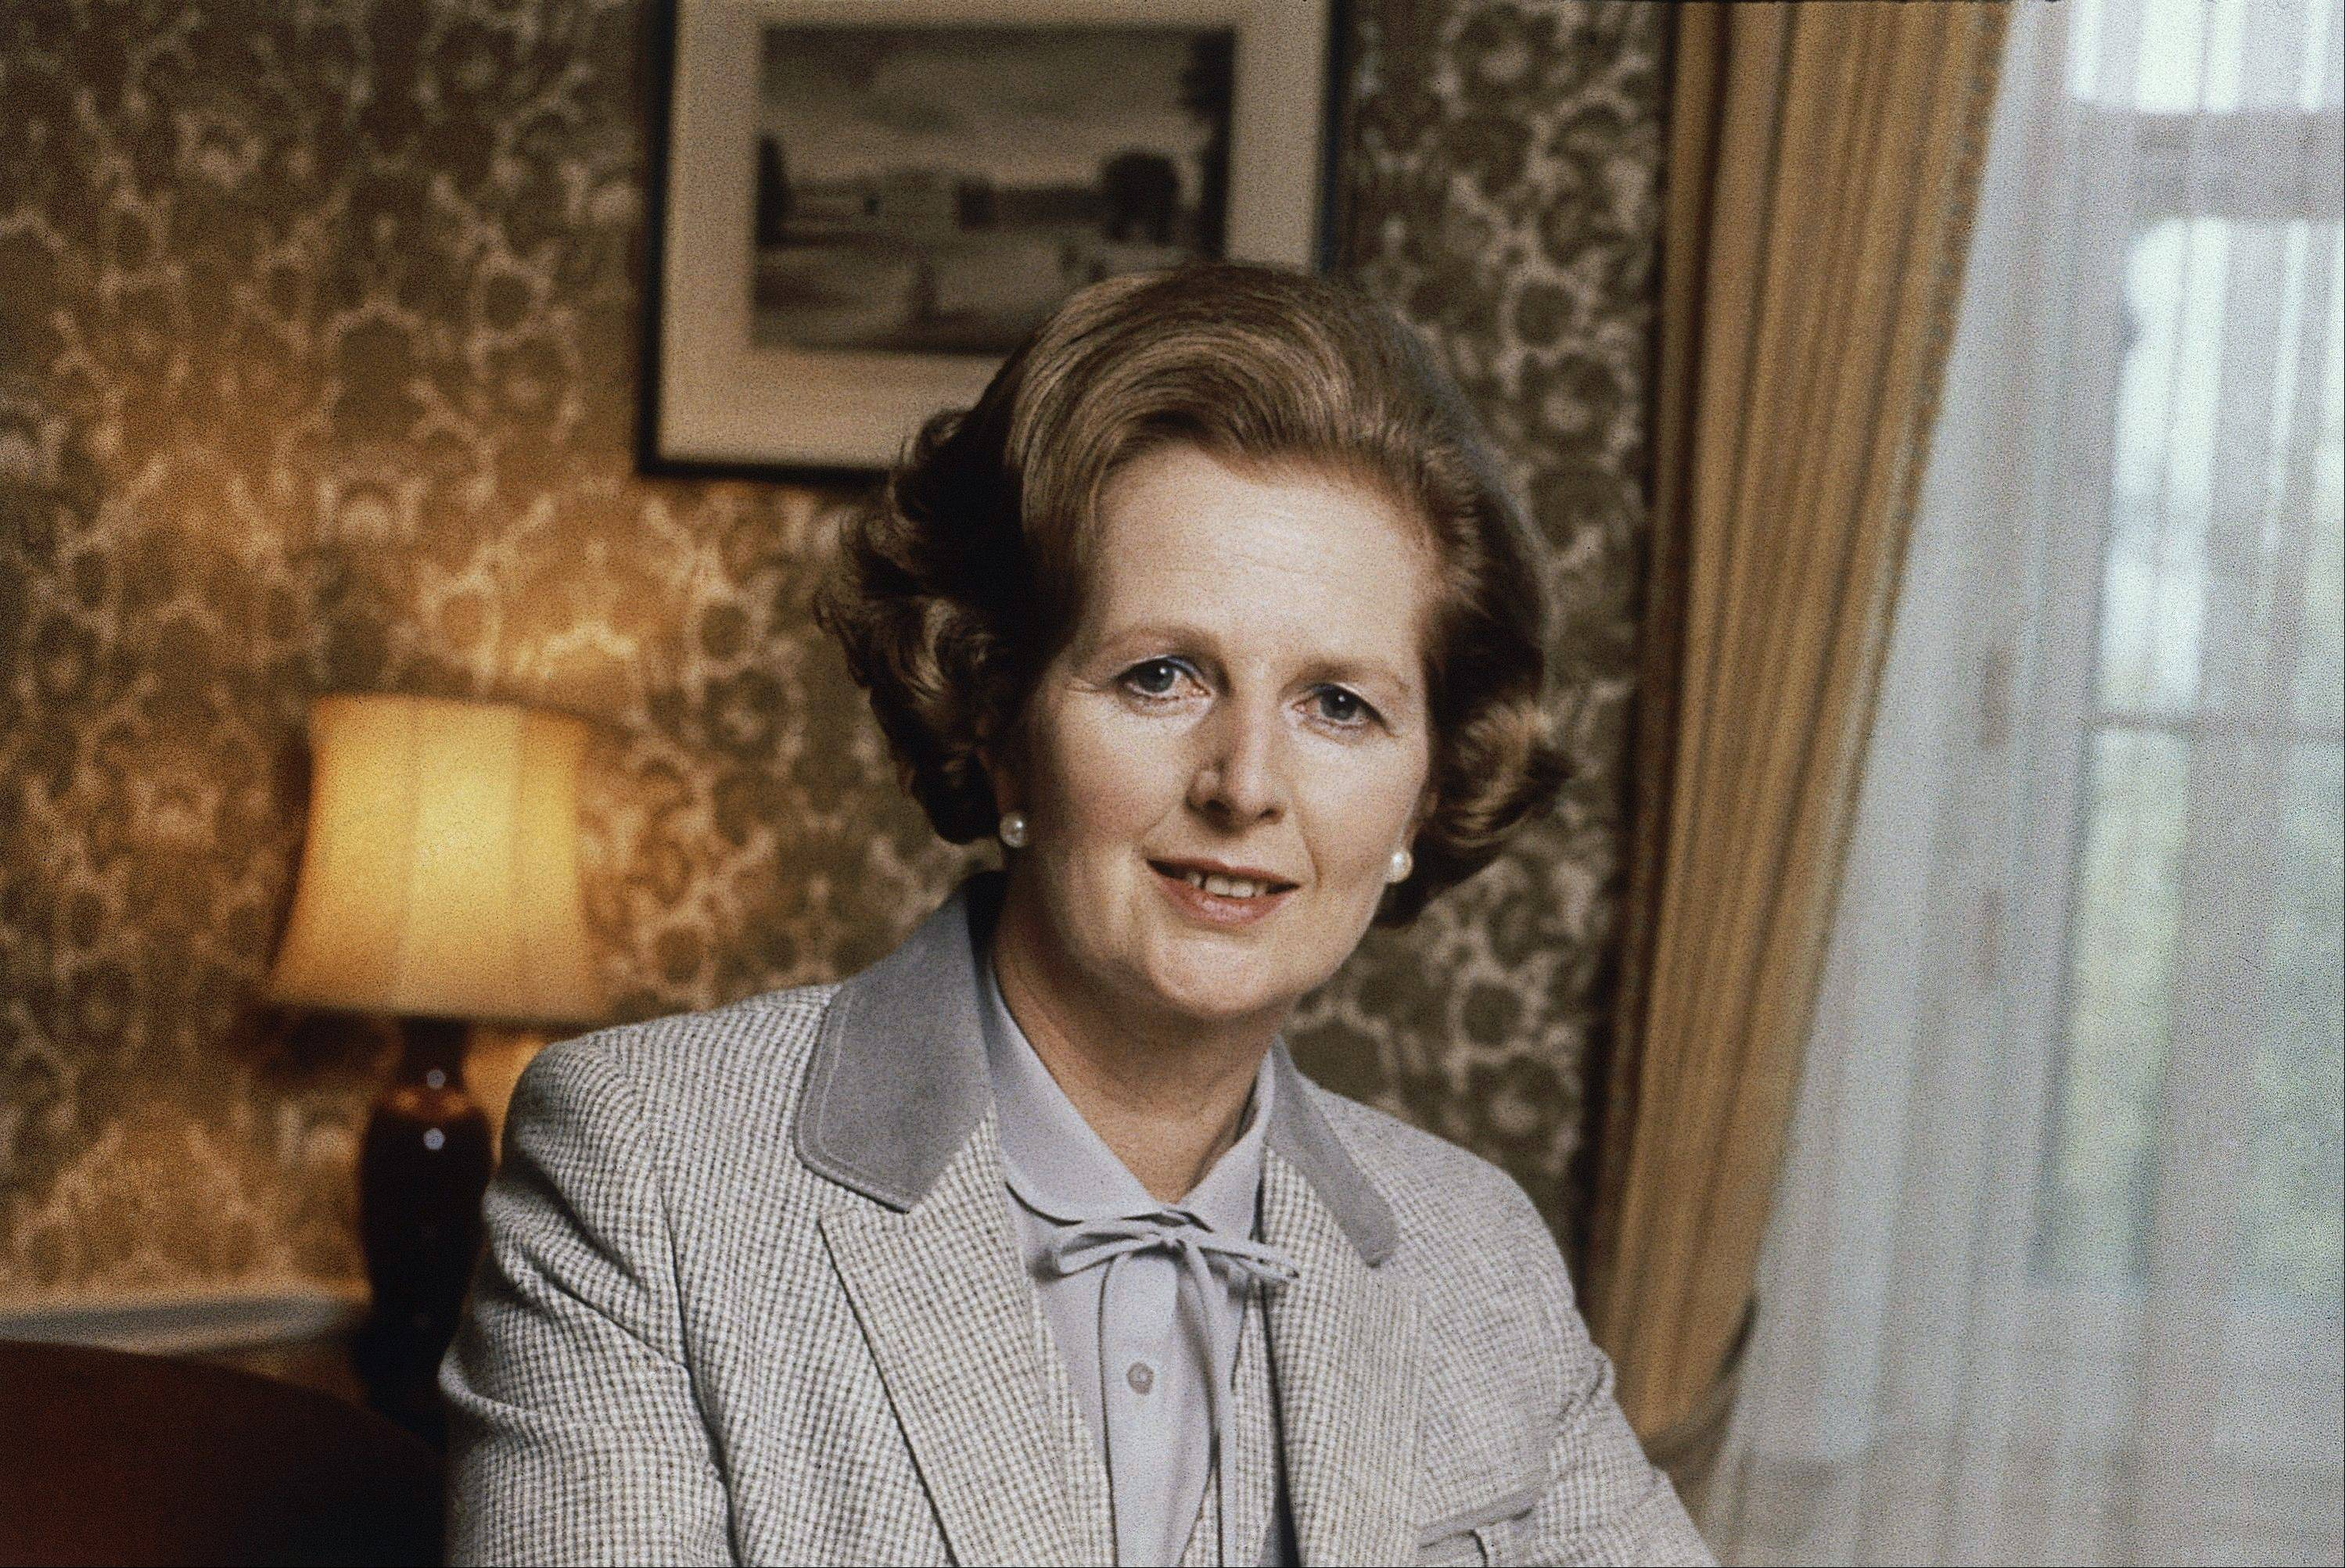 A 1980 file photo of British Prime Minister Margaret Thatcher.